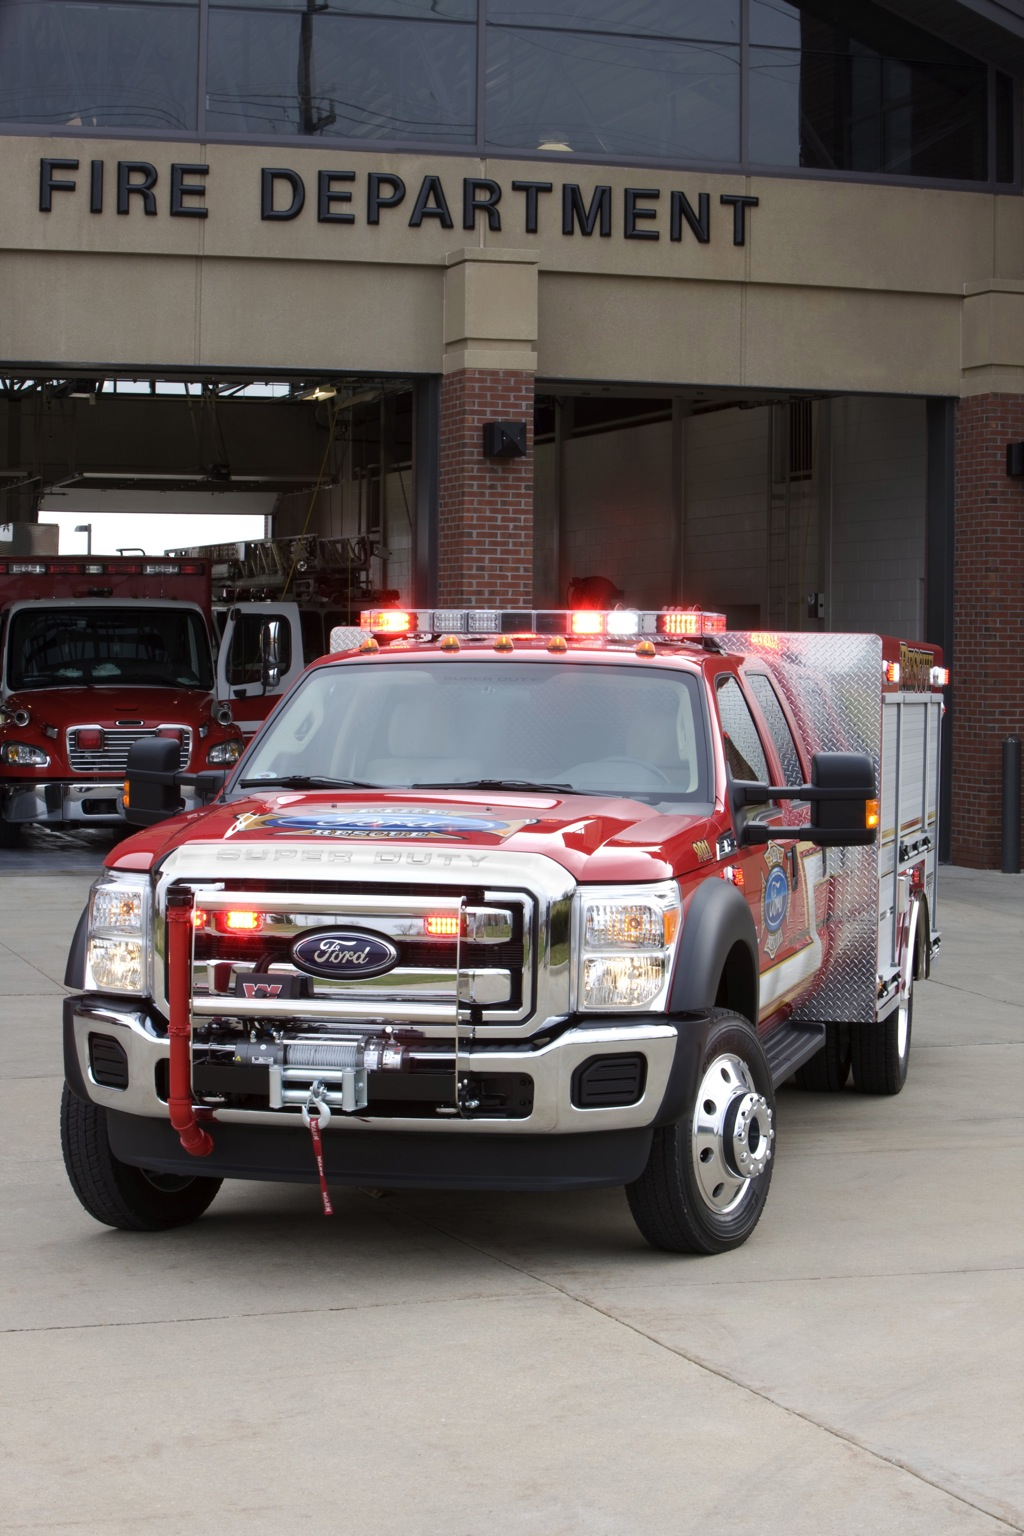 New Ford Truck >> 2011 Ford F-550 Super Duty Fire Truck in LA - autoevolution